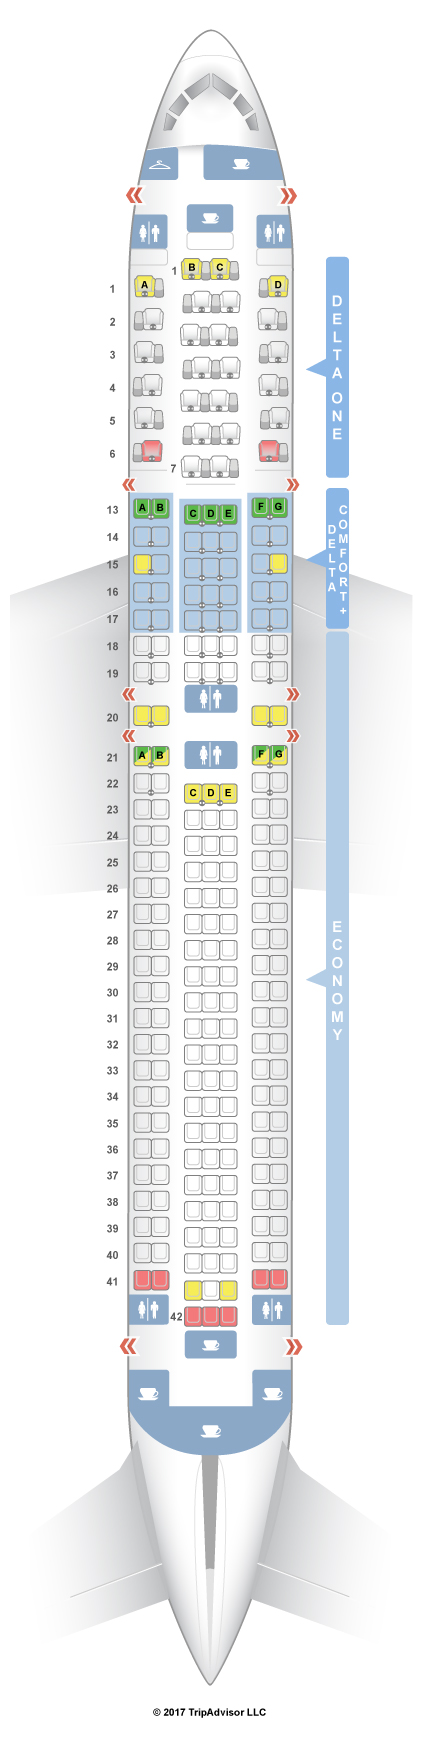 Delta Boeing 767 Seating Chart - Otvod on